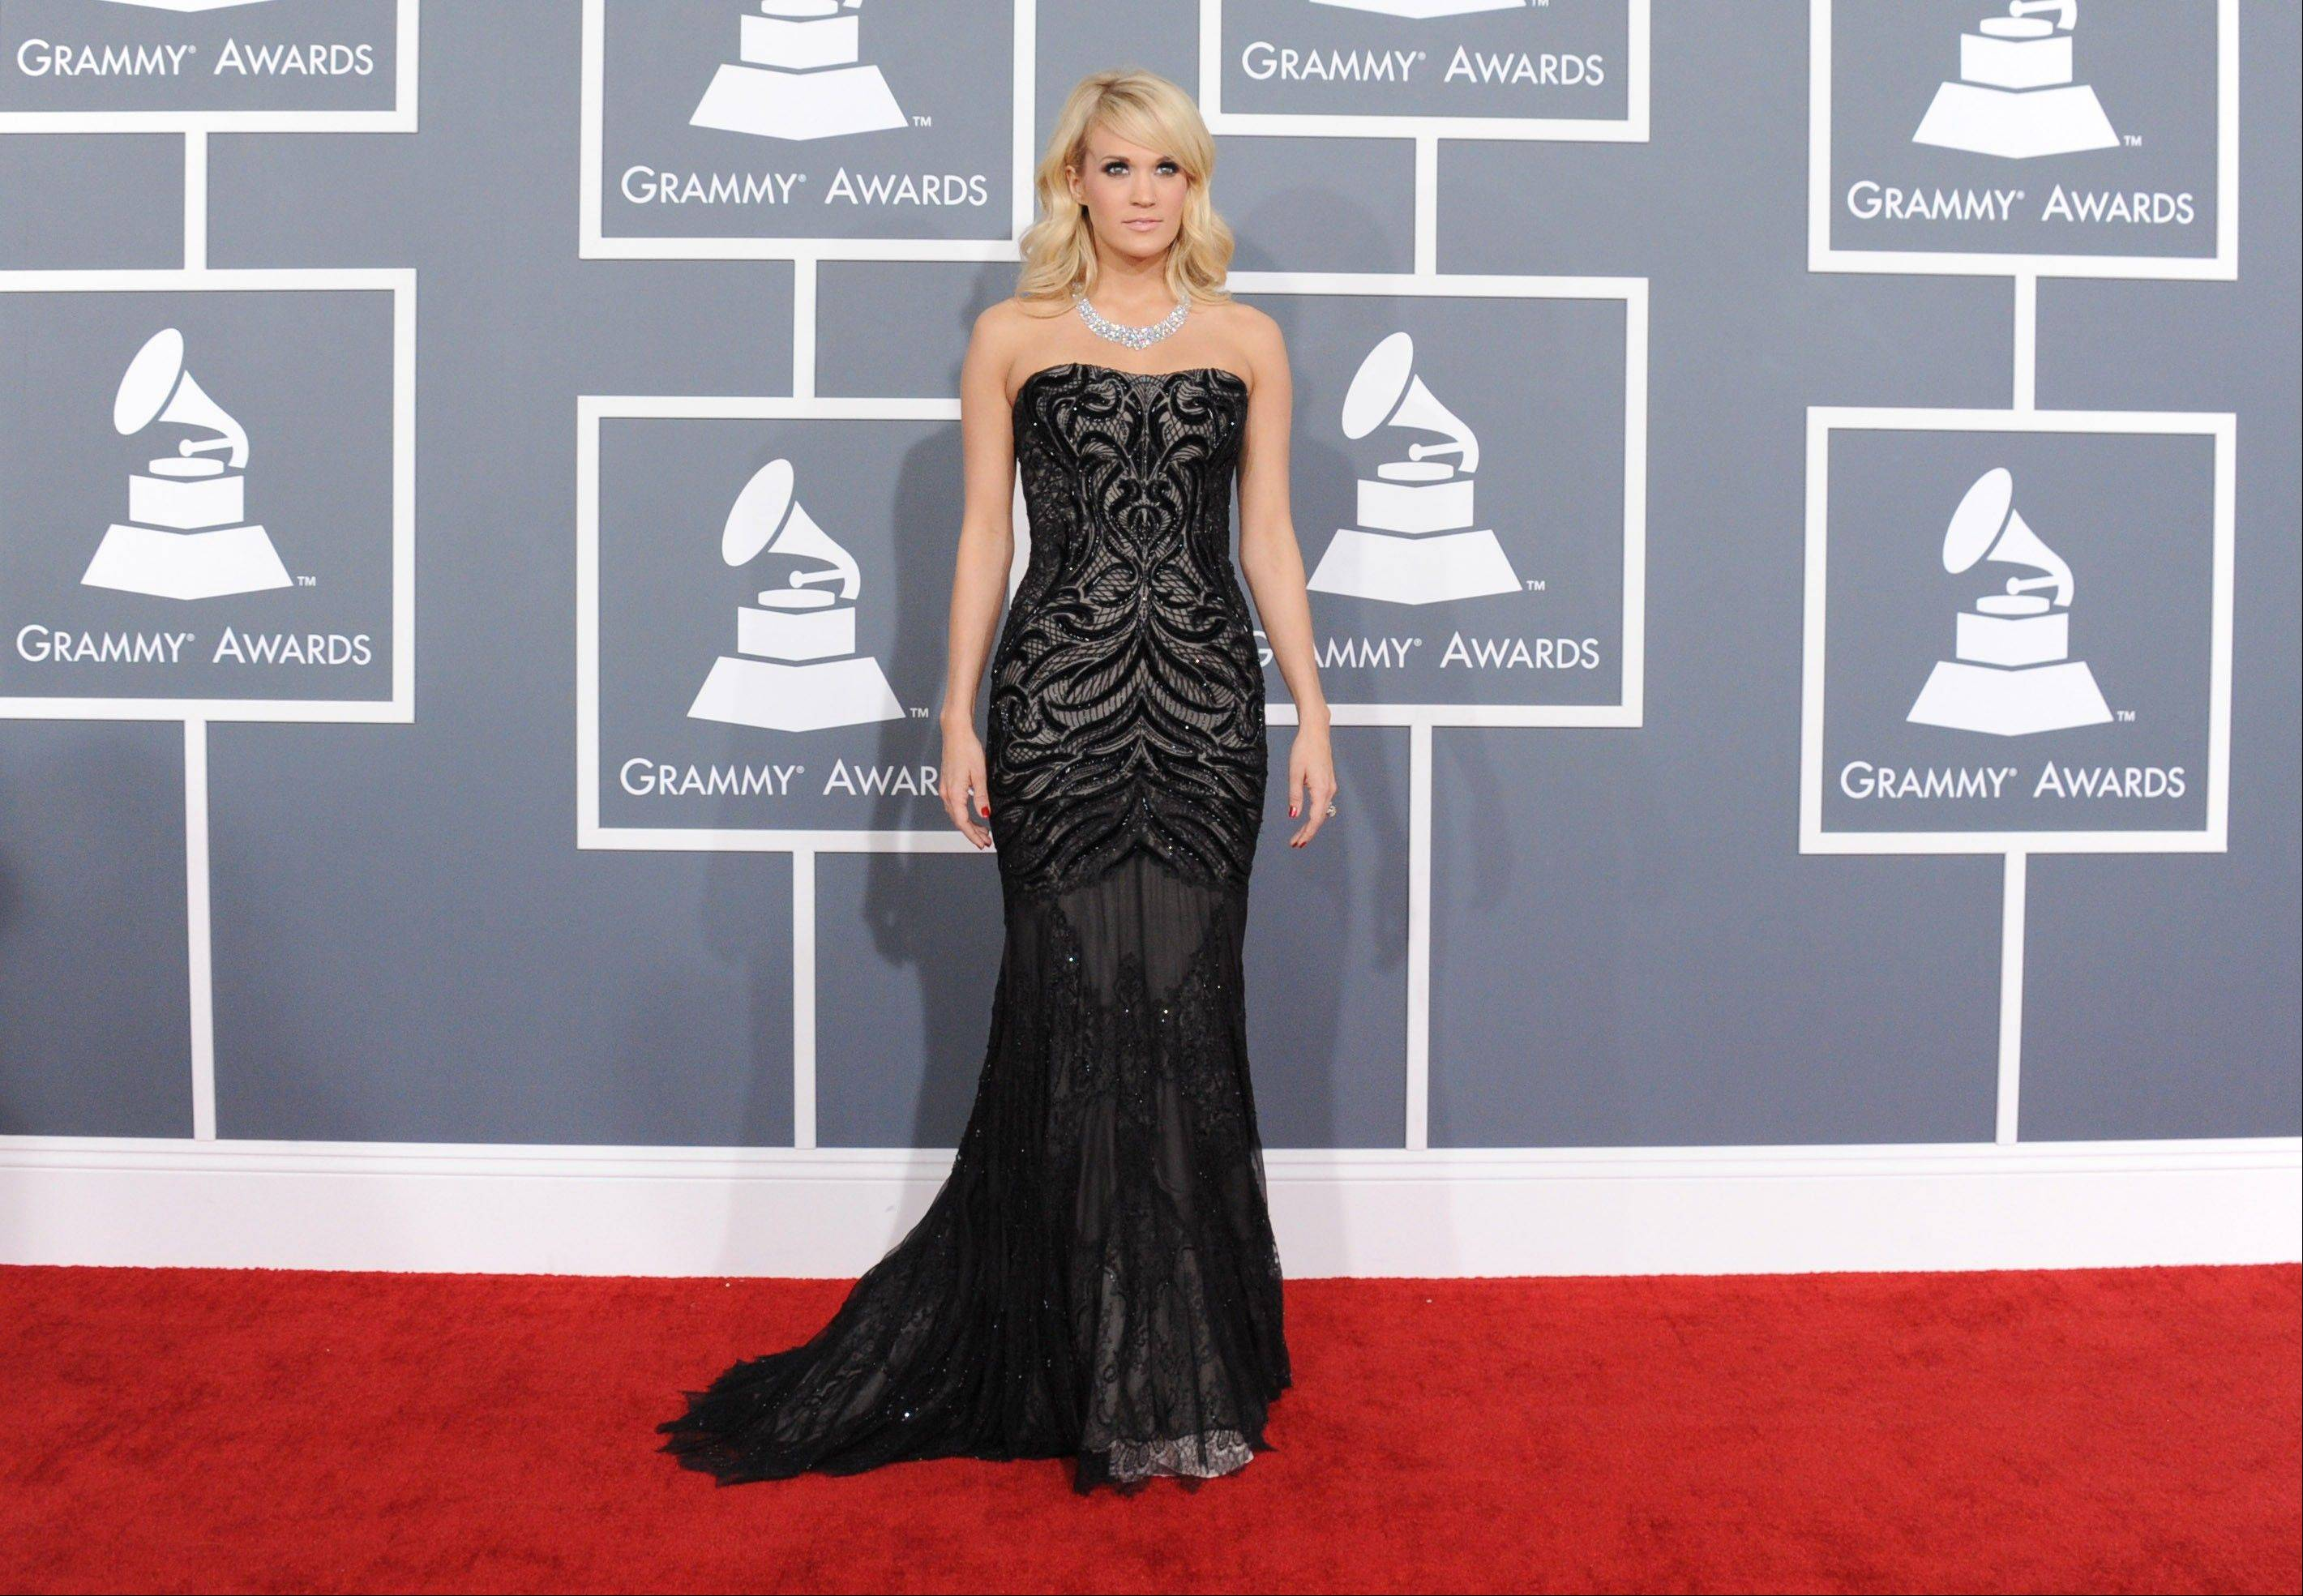 Country singer Carrie Underwood arrives at the 55th annual Grammy Awards on Sunday, Feb. 10, 2013, in Los Angeles.